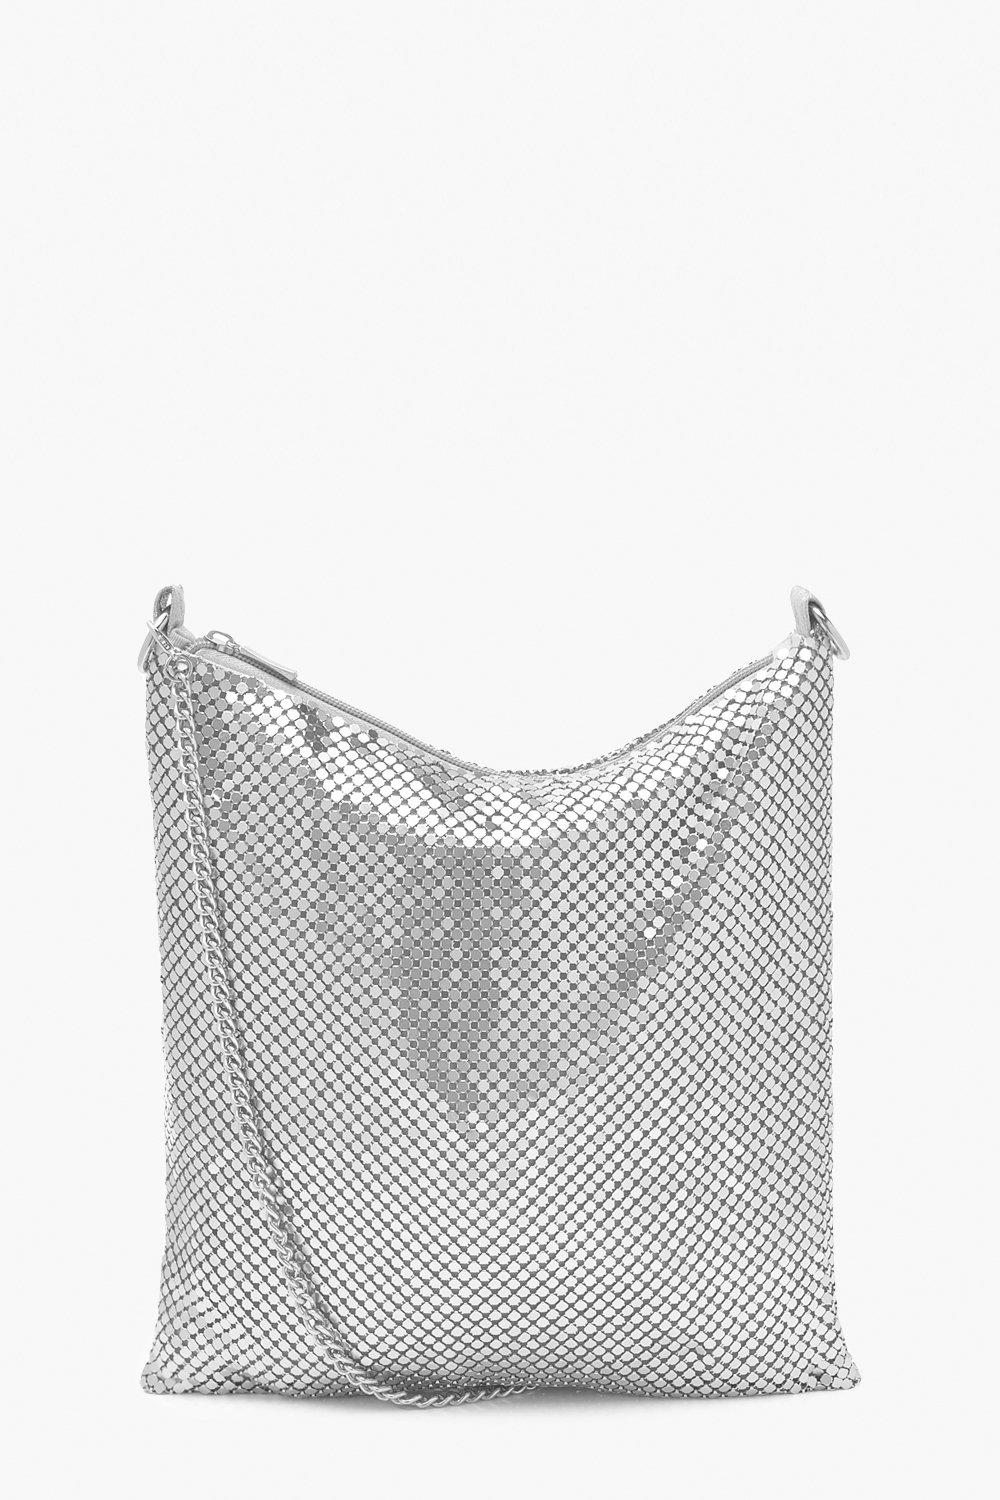 Vintage Handbags, Purses, Bags *New* Womens Chainmail Slouchy Cross Body Bag - grey - One Size $46.00 AT vintagedancer.com